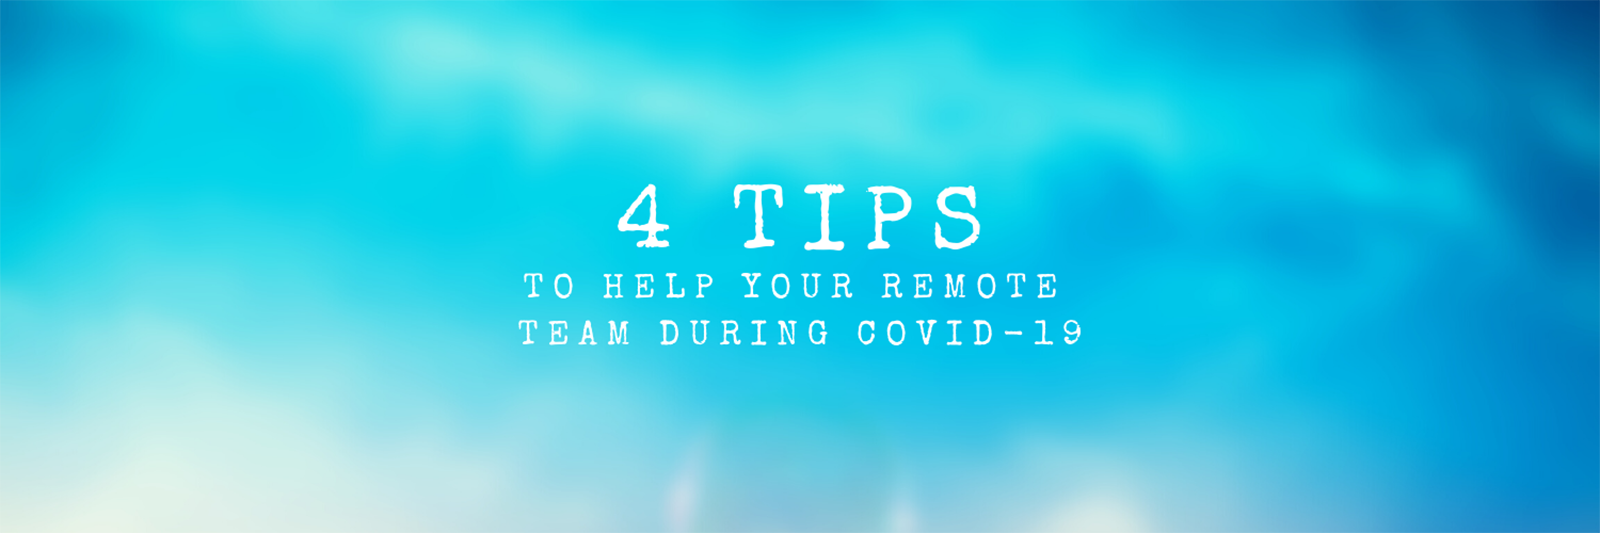 4 Tips To Help Your Remote Team During COVID-19